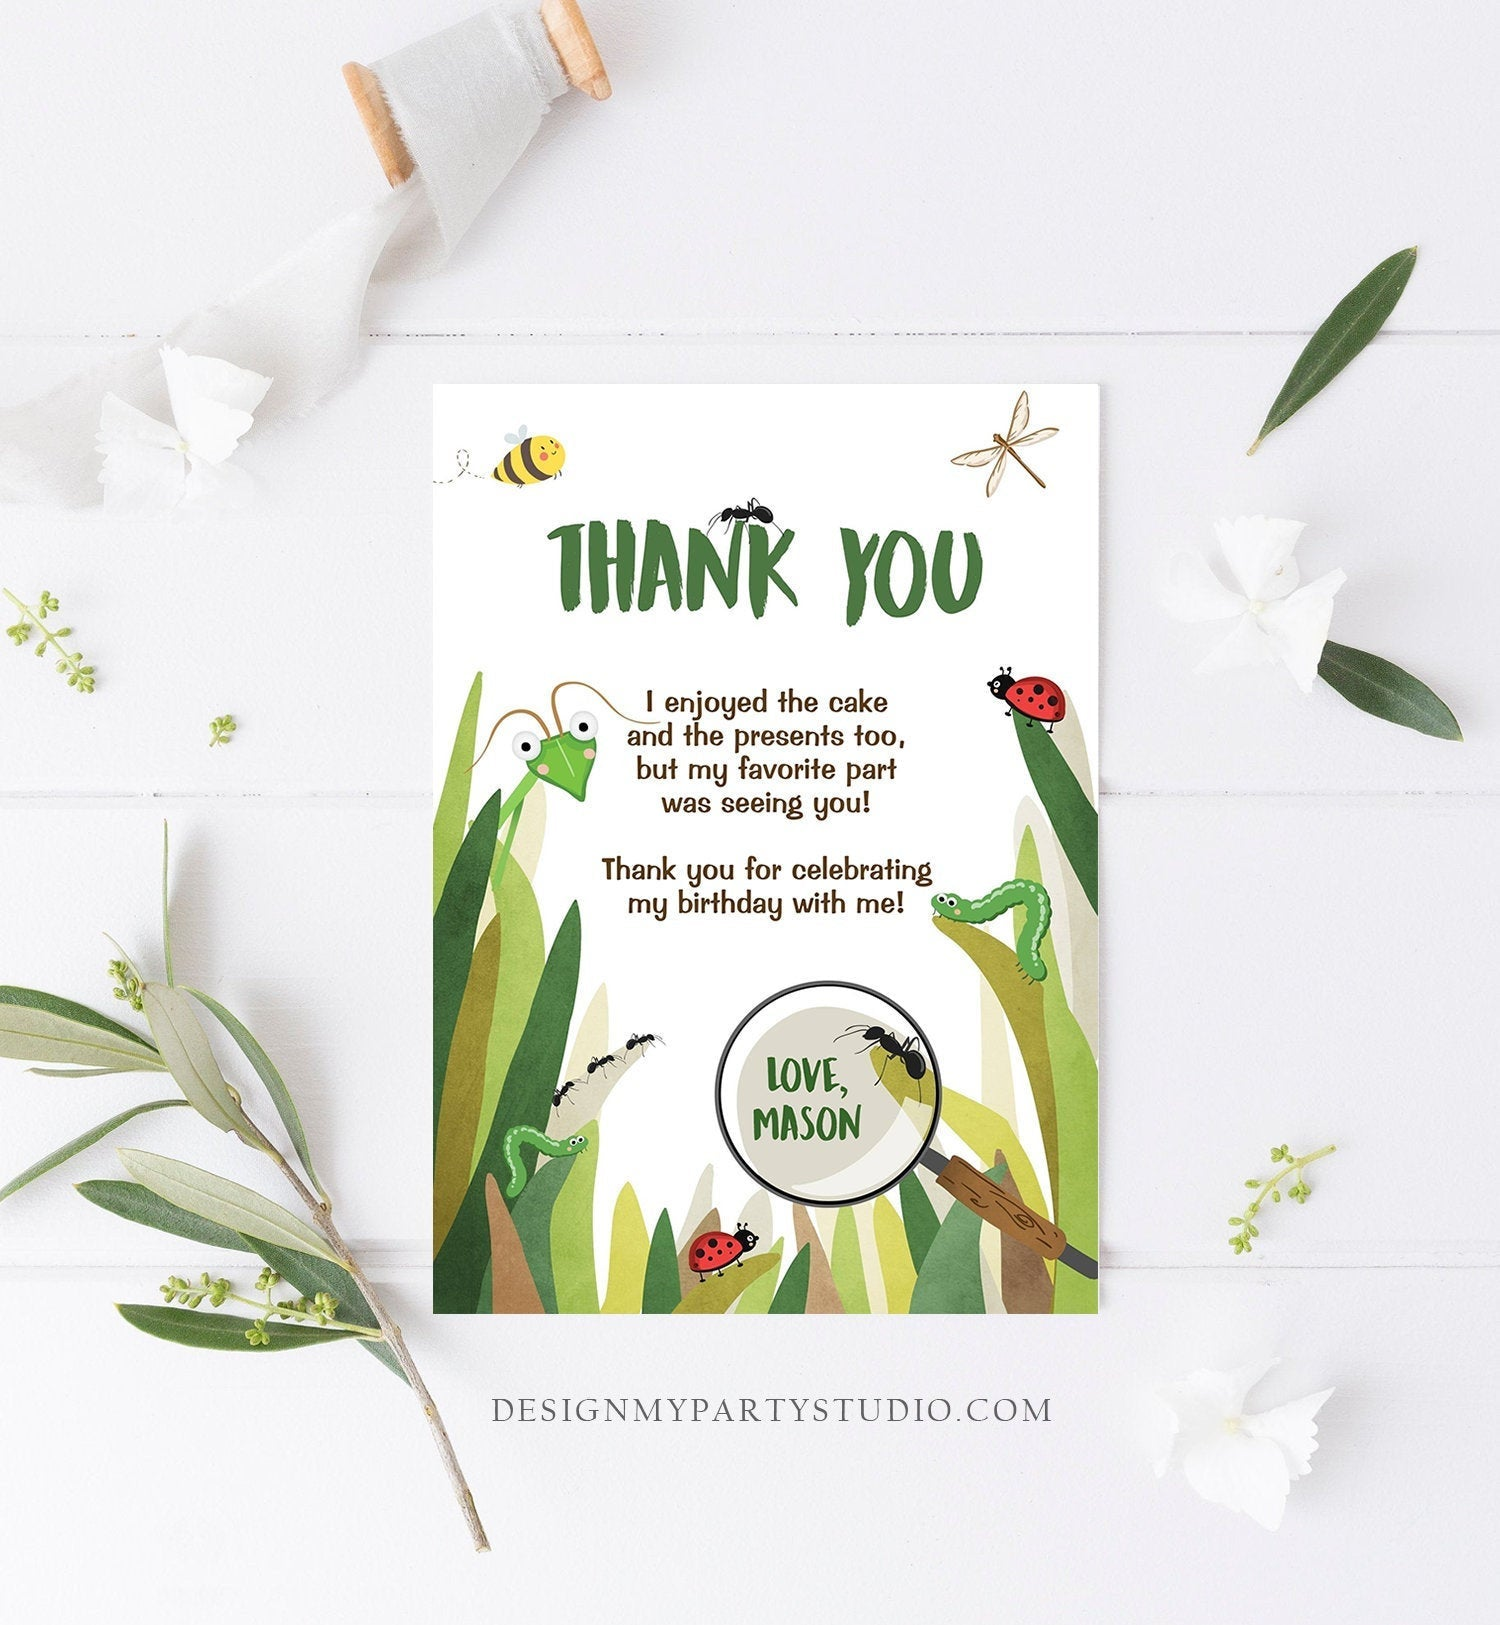 Editable Thank You Card Bug Thank you Note Bug Birthday Insect Party Boy Birthday Thank you Download Printable Template Corjl Digital 0090